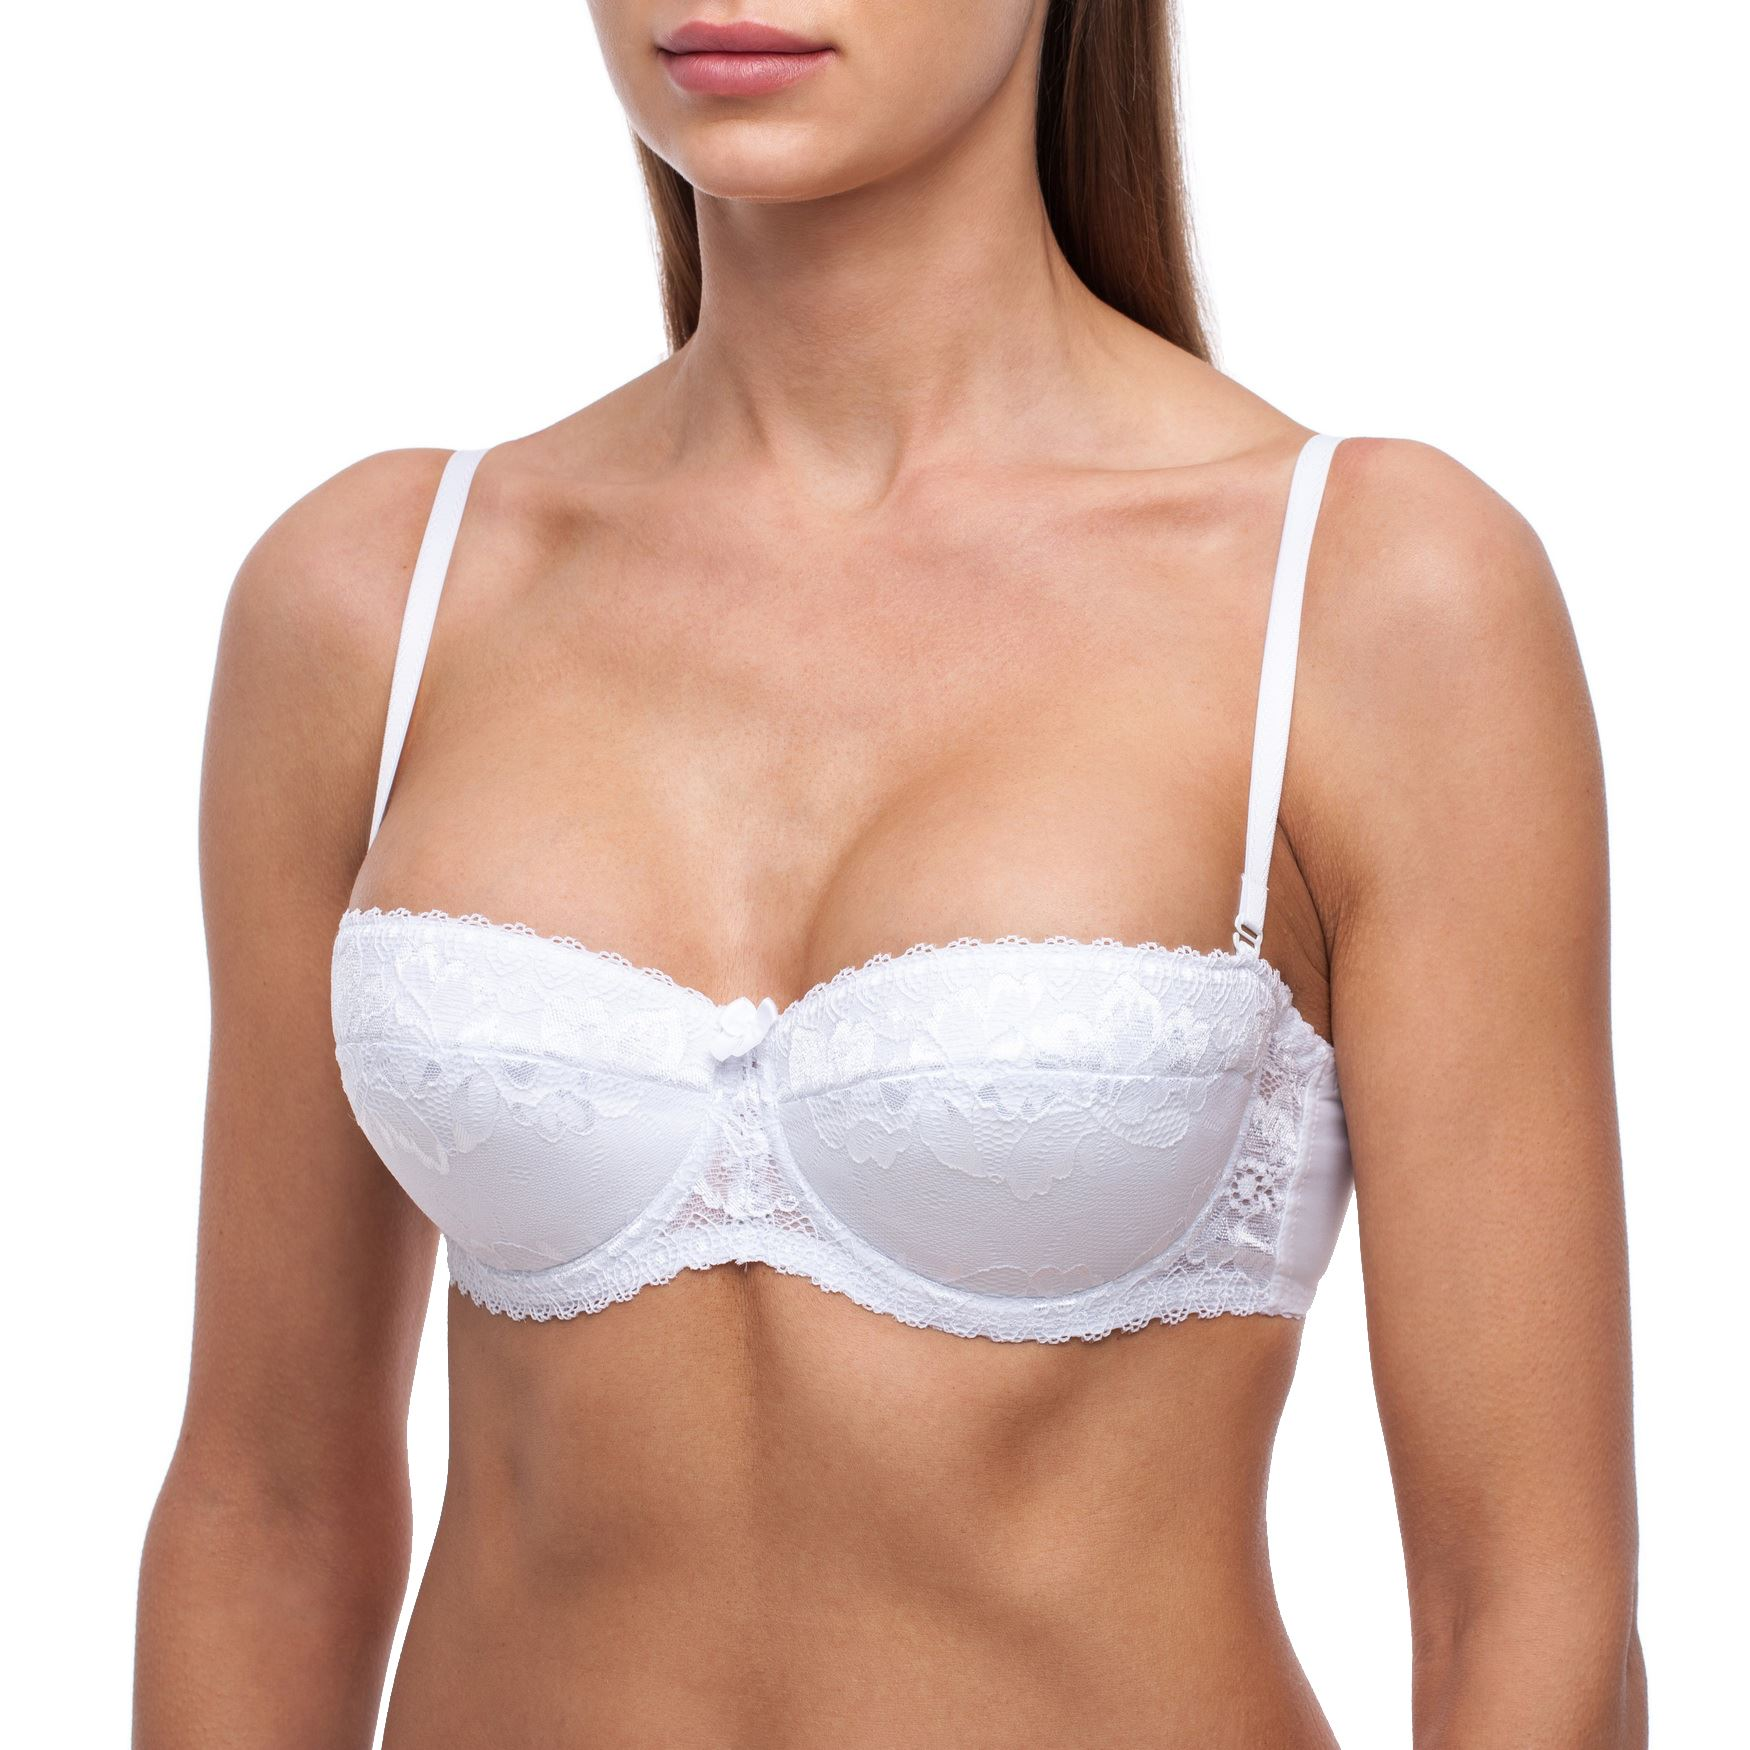 Padded Bra The complete Padded Bra Collection from Marie Jo, Prima Donna, Andres Sarda and Aubade. Buy here online from Rigby & Peller.